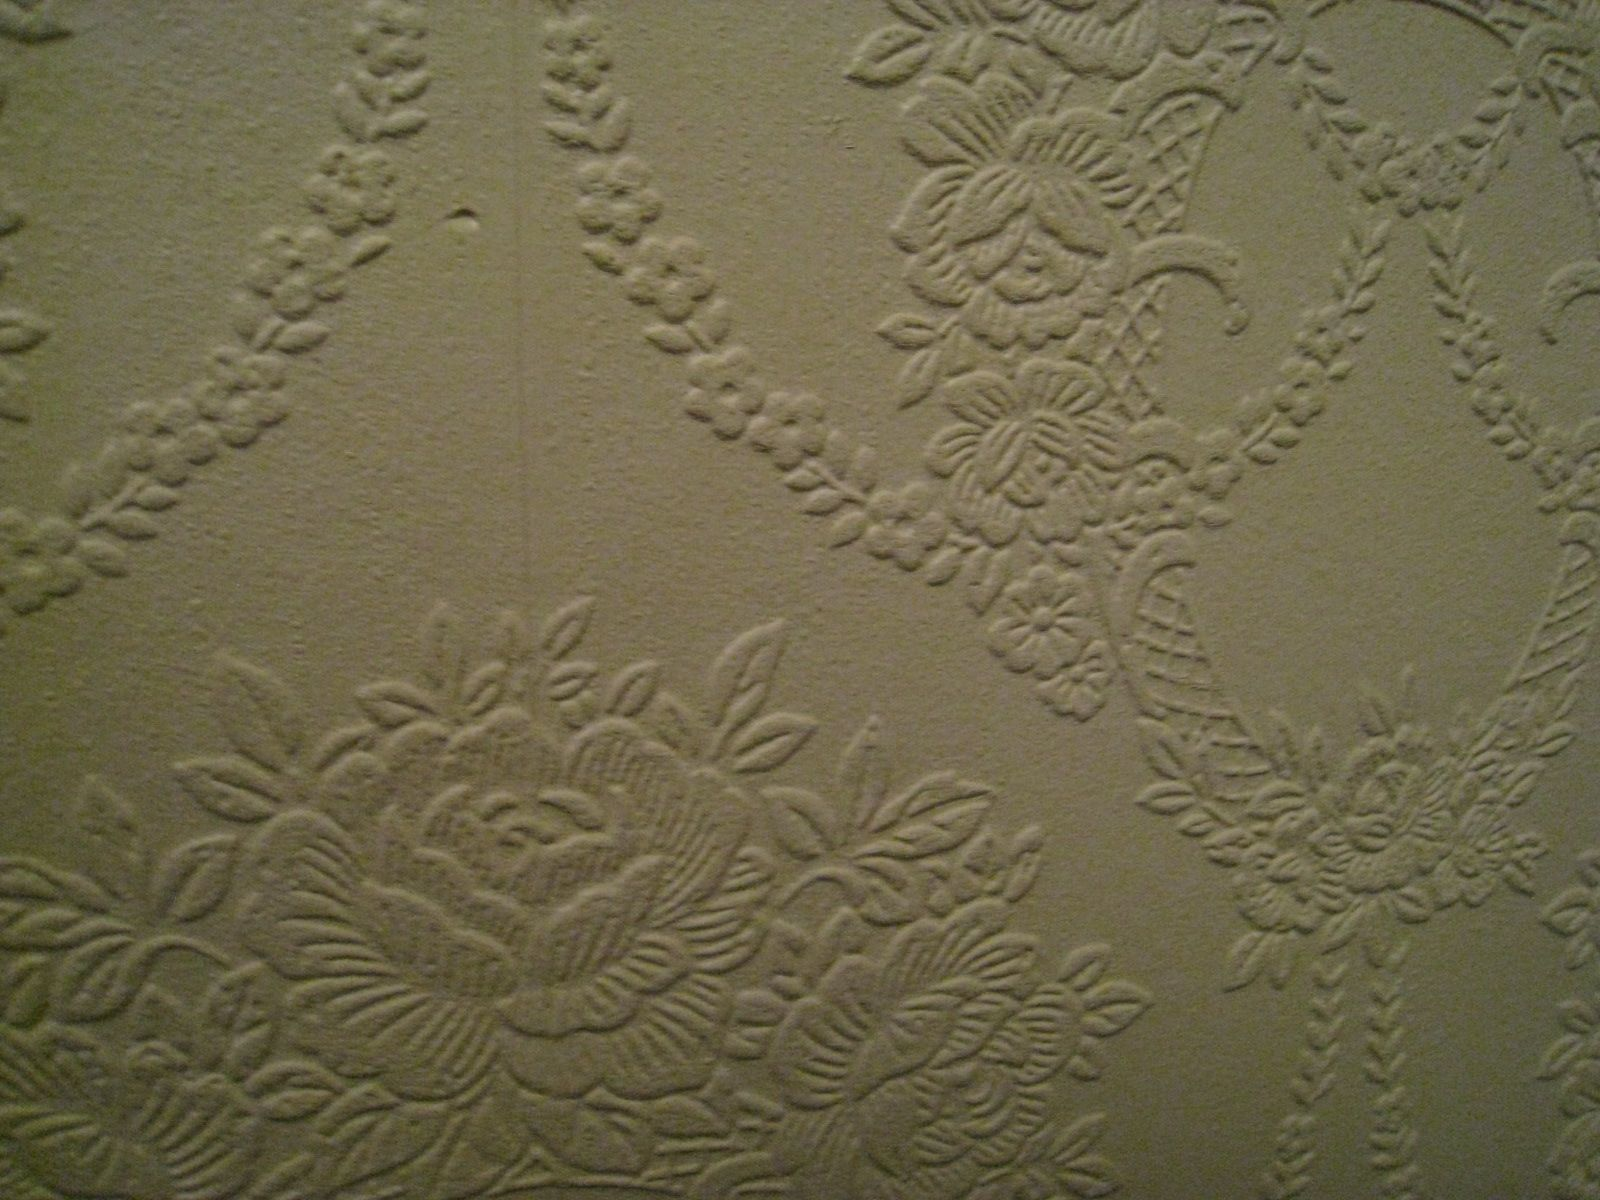 Can You Texture And Paint Over Wallpaper Wood panel